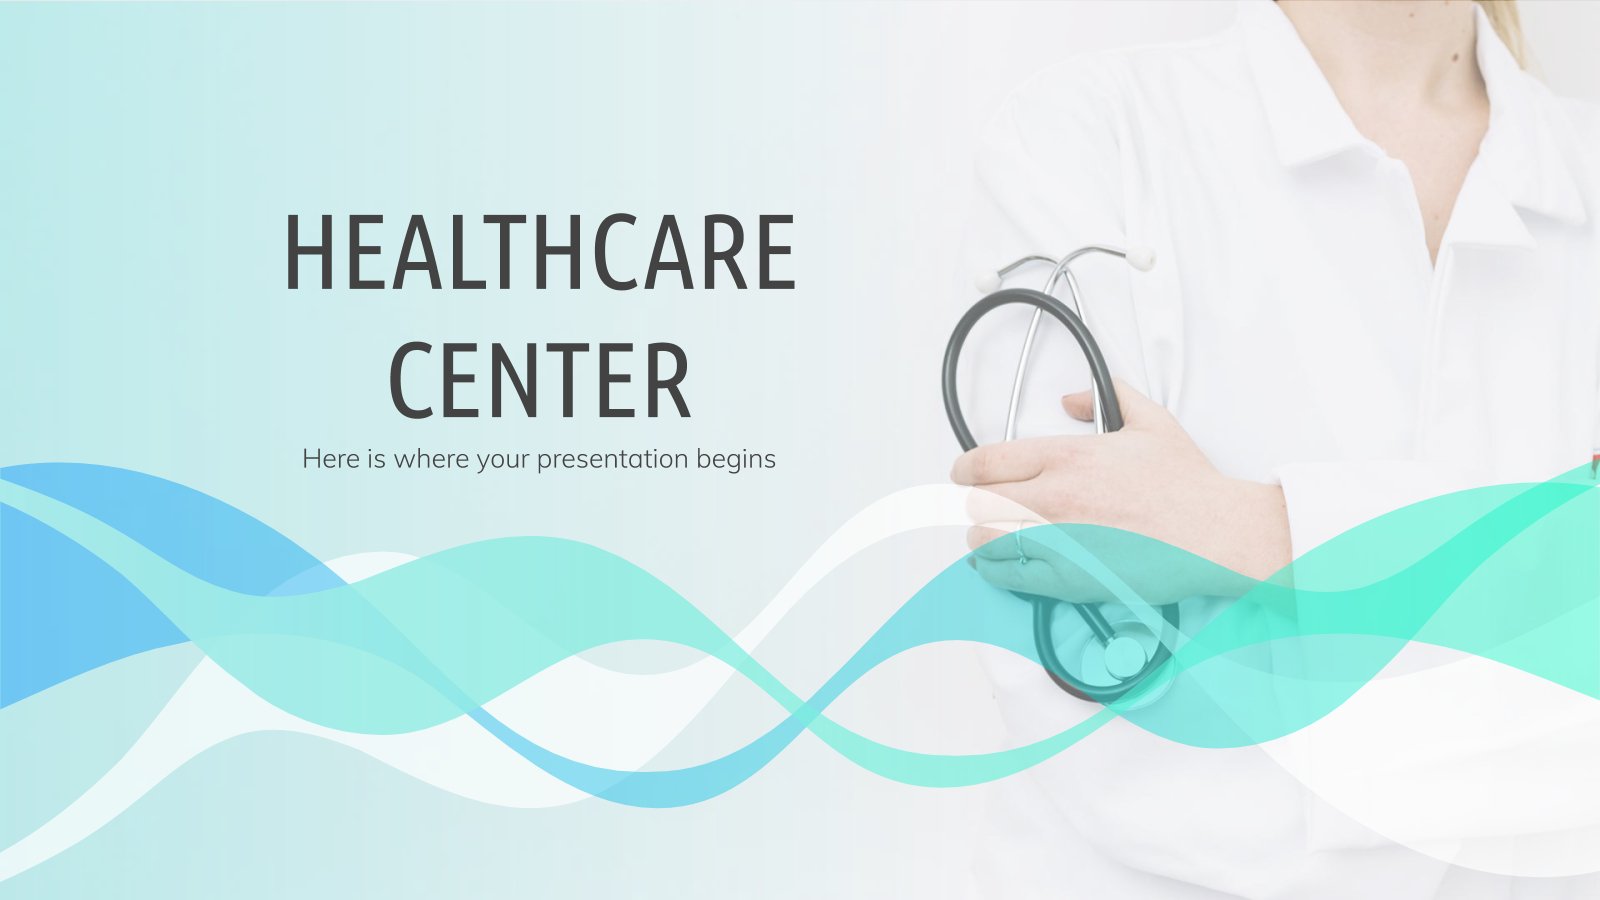 Healthcare Center - Free Presentation Template For Google For Free Nursing Powerpoint Templates